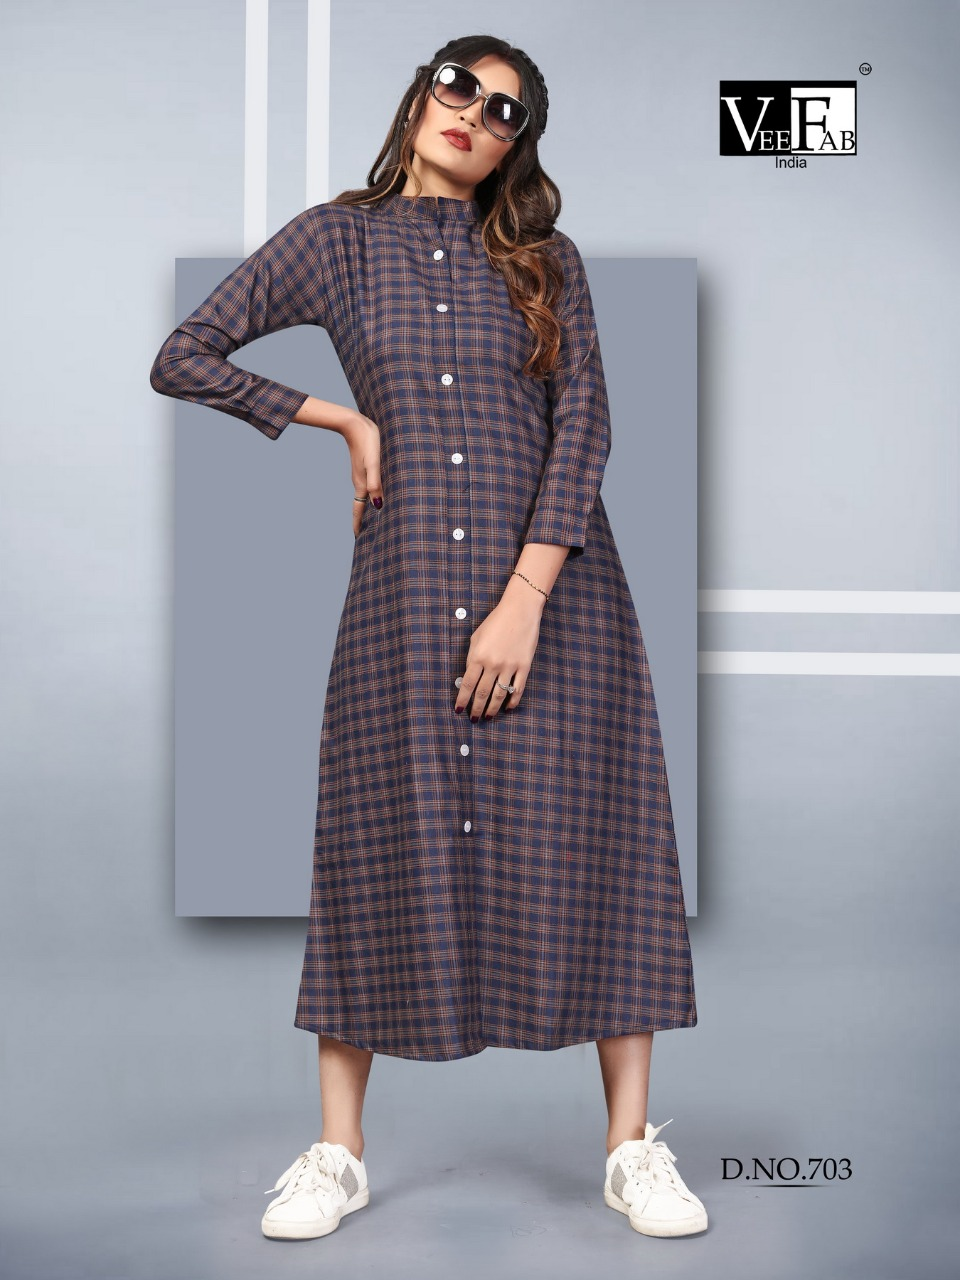 Vee Fab Winter Grace Vol 7 Kurti Wholesale Catalog 6 Pcs 6 - Vee Fab Winter Grace Vol 7 Kurti Wholesale Catalog 6 Pcs